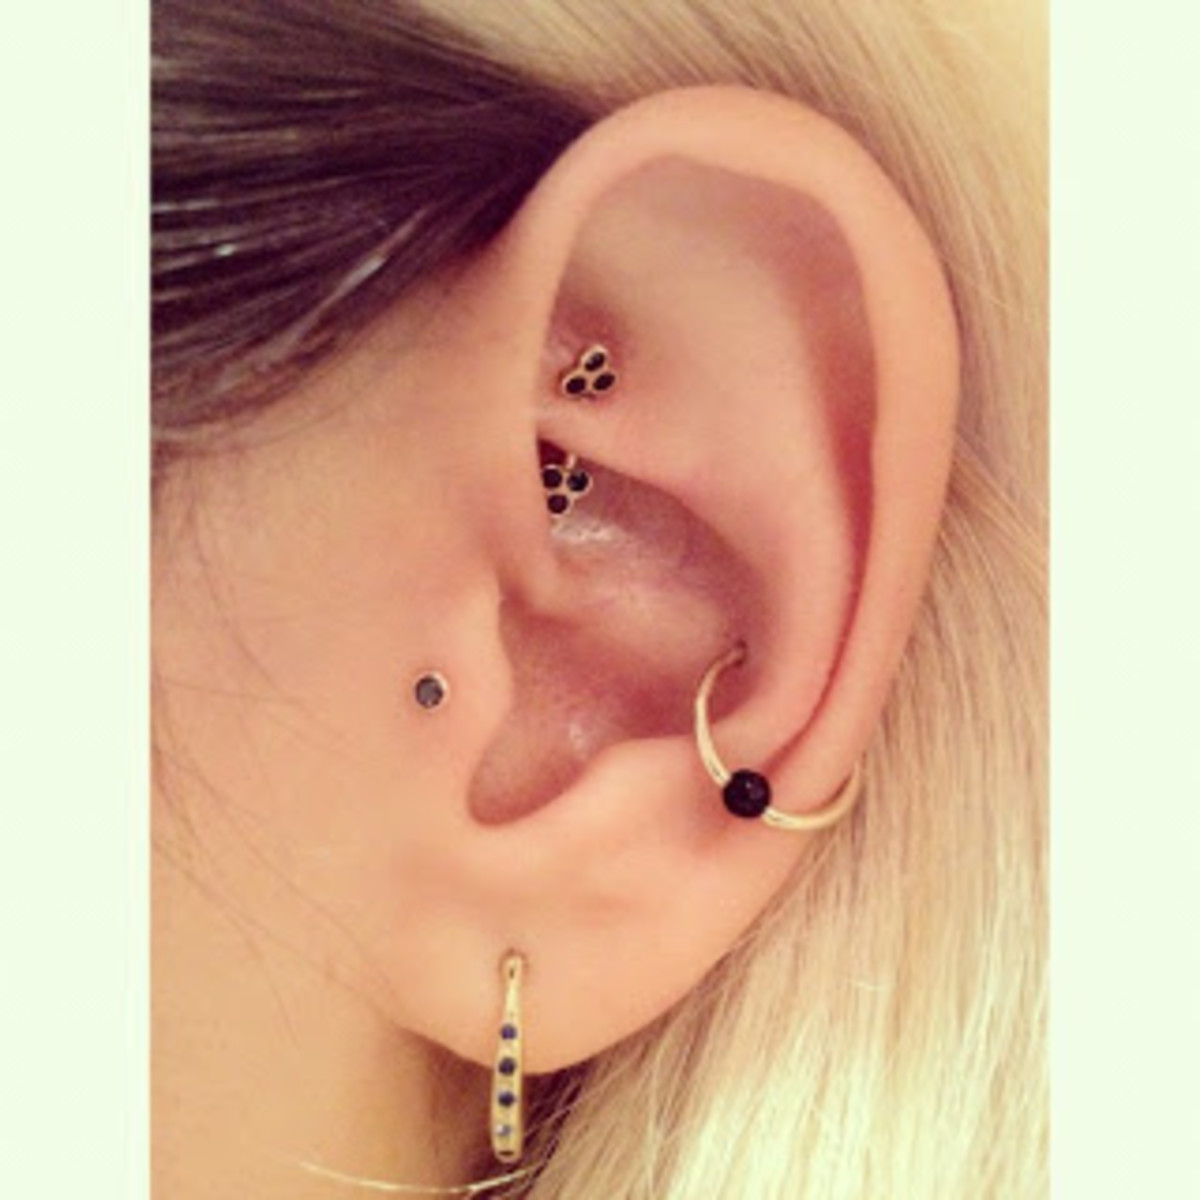 Rook, tragus, orbital, and lobe piercings